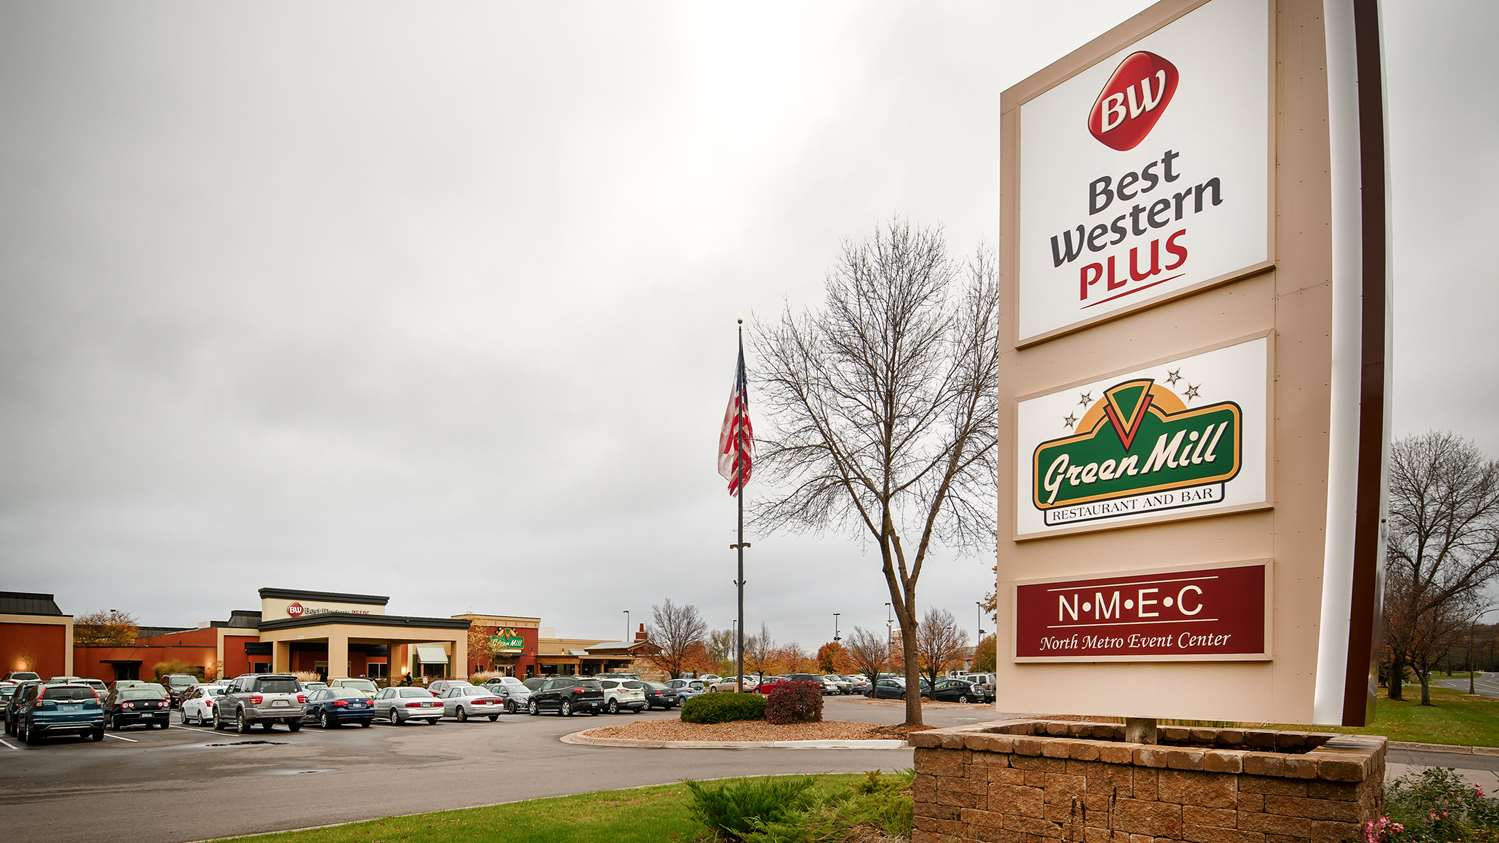 Exterior view - Best Western Plus Hotel Shoreview